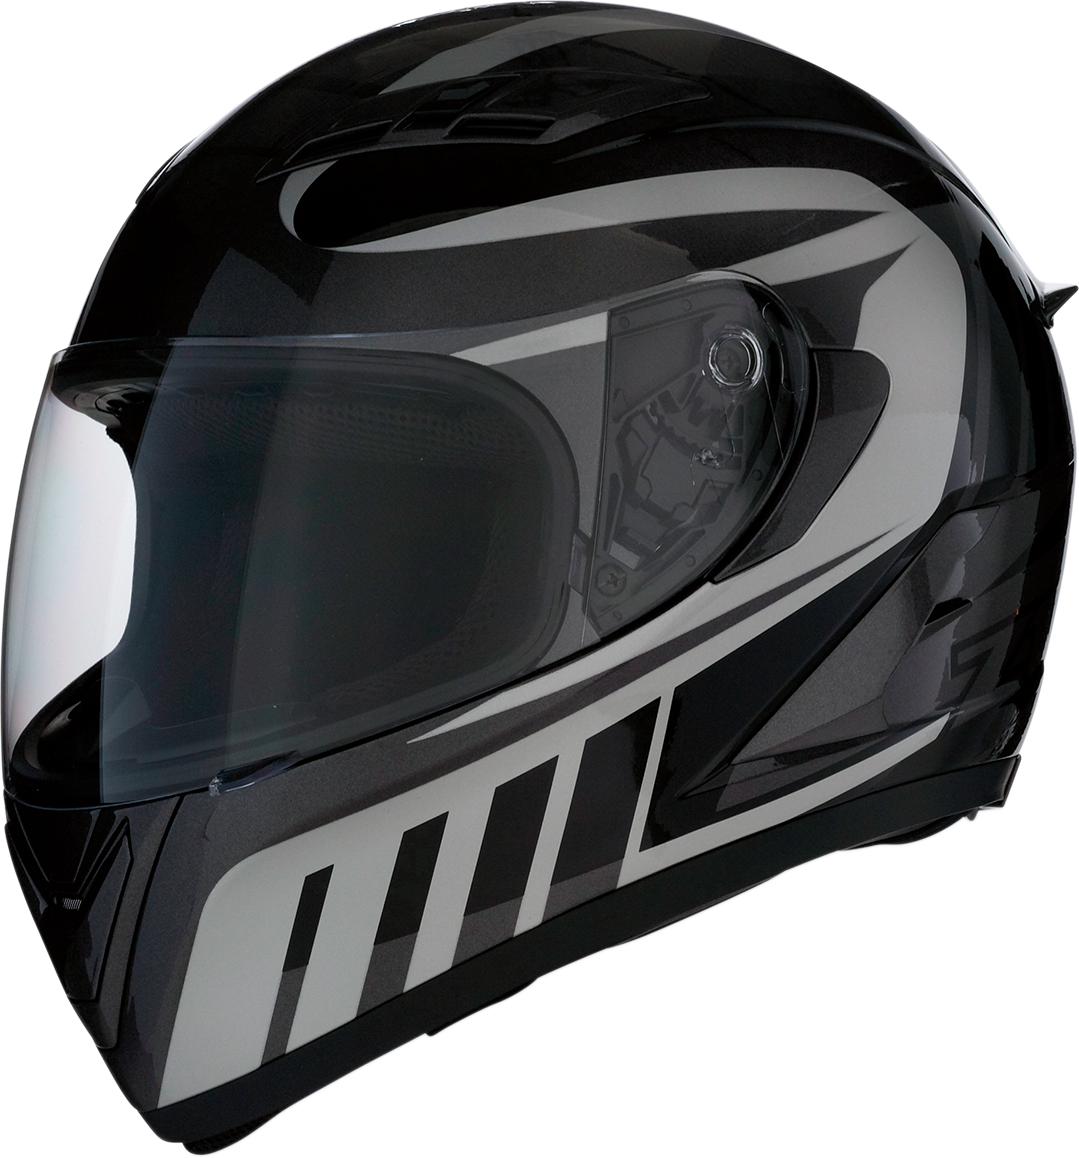 Z1R Strike Ops Attack Unisex Motorcycle Riding Street Racing Full Face Helmet